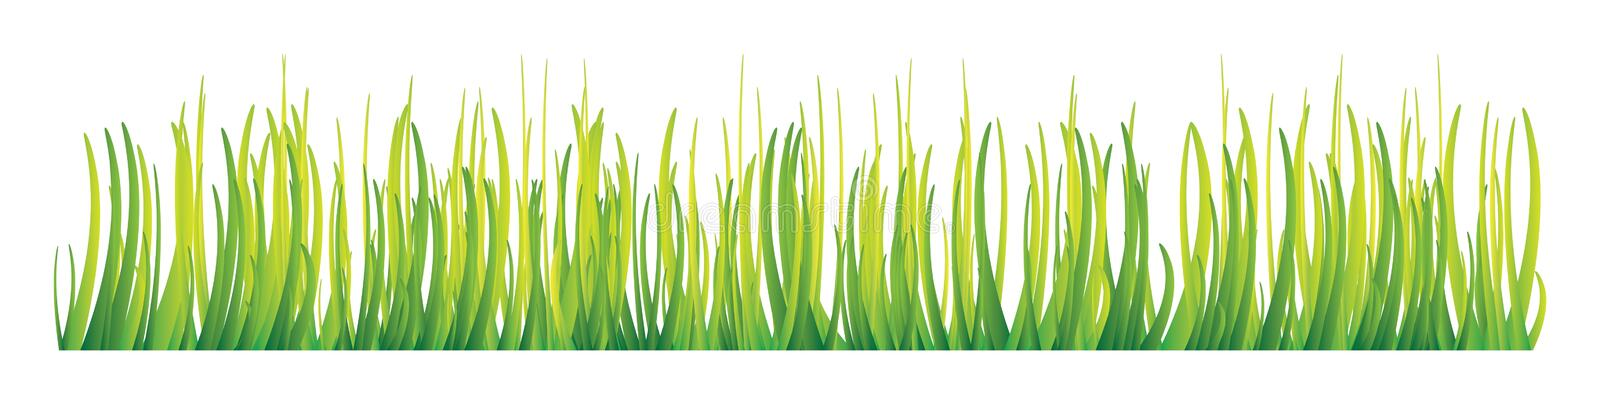 Download Grass stock vector. Illustration of easter, green, grow - 23203002